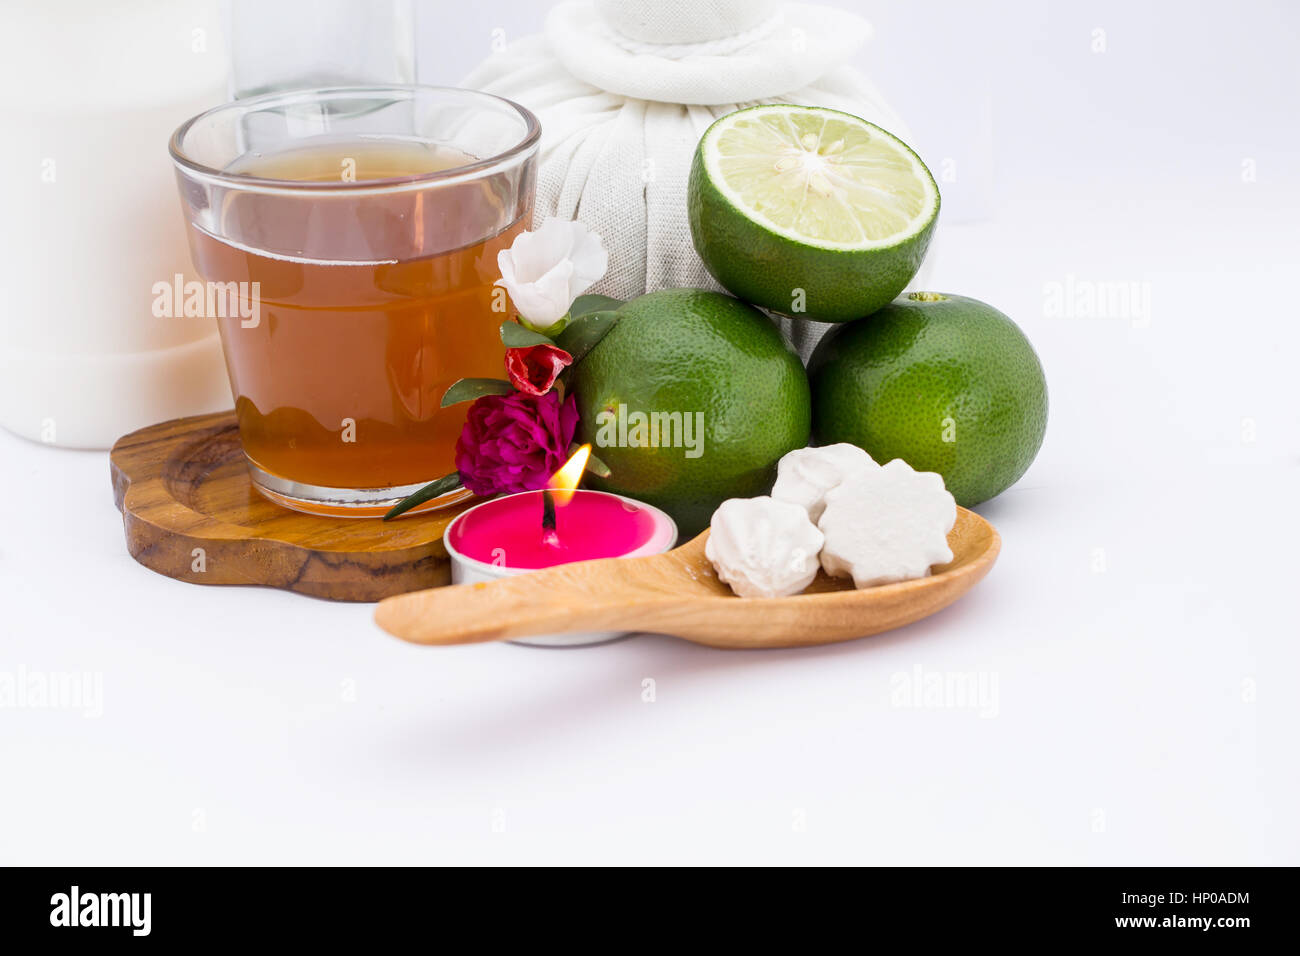 Leman and honey for spa - Stock Image